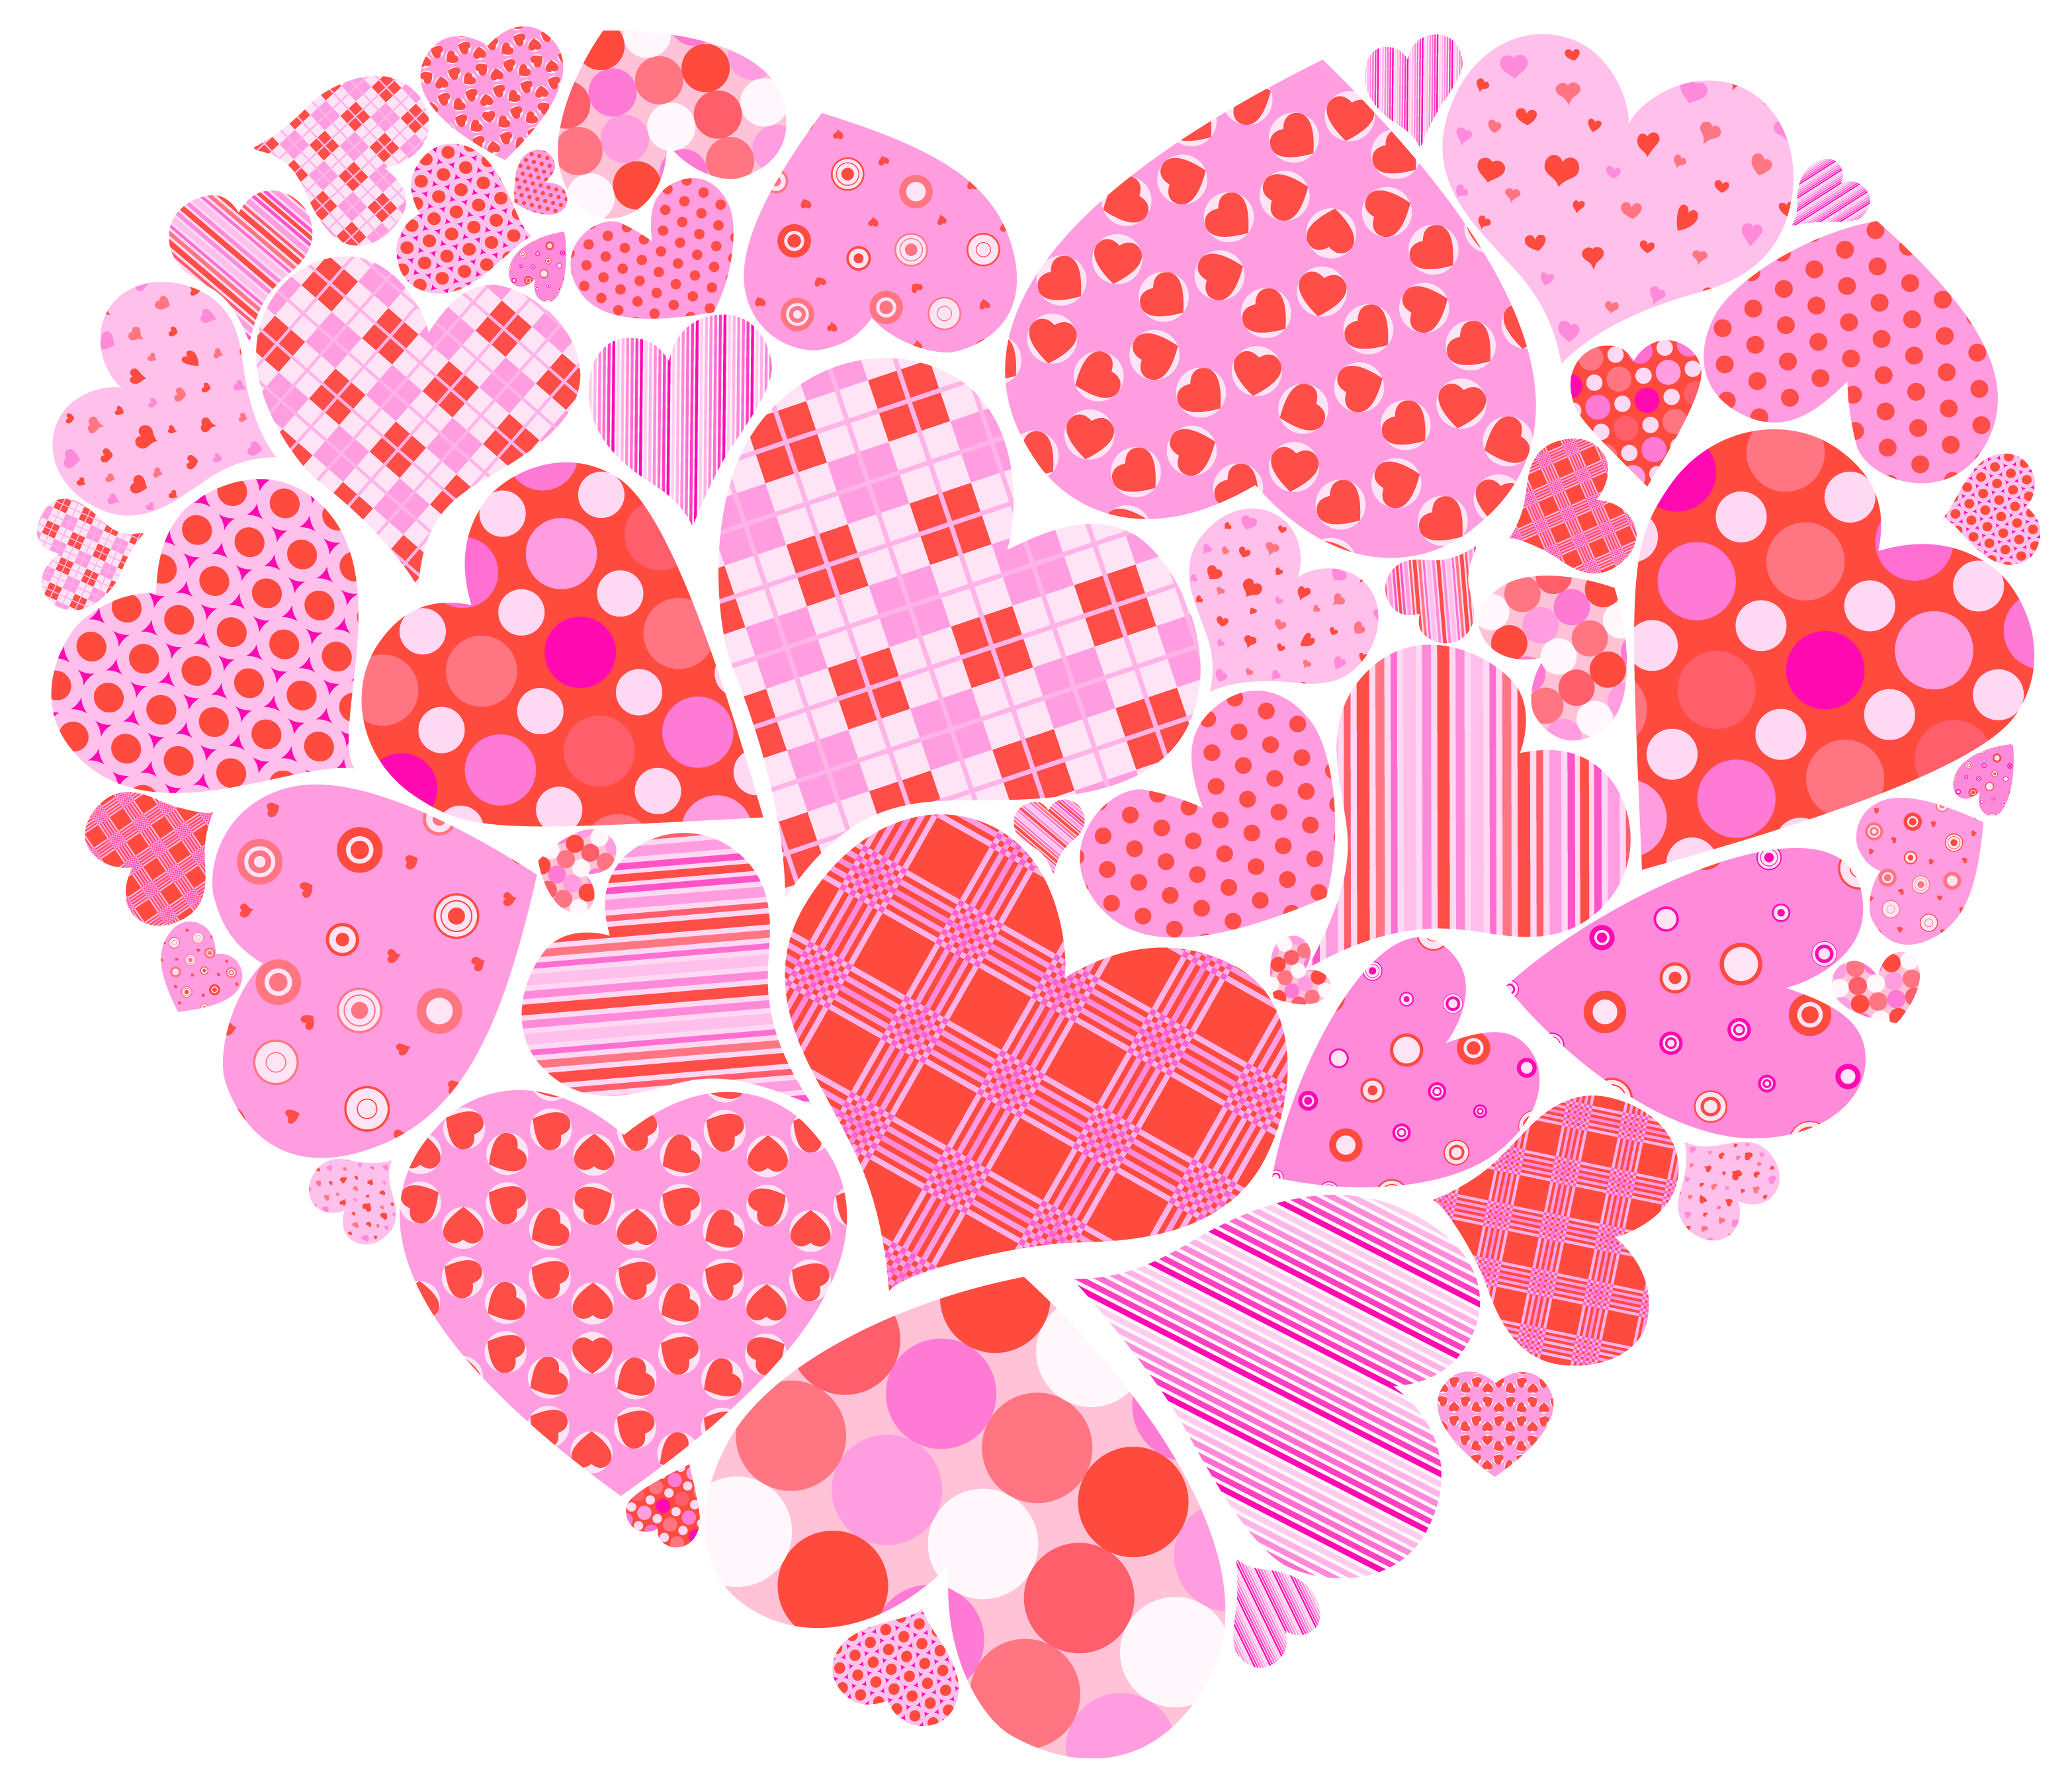 png freeuse download Valentines day heart of. Valentine vector transparent